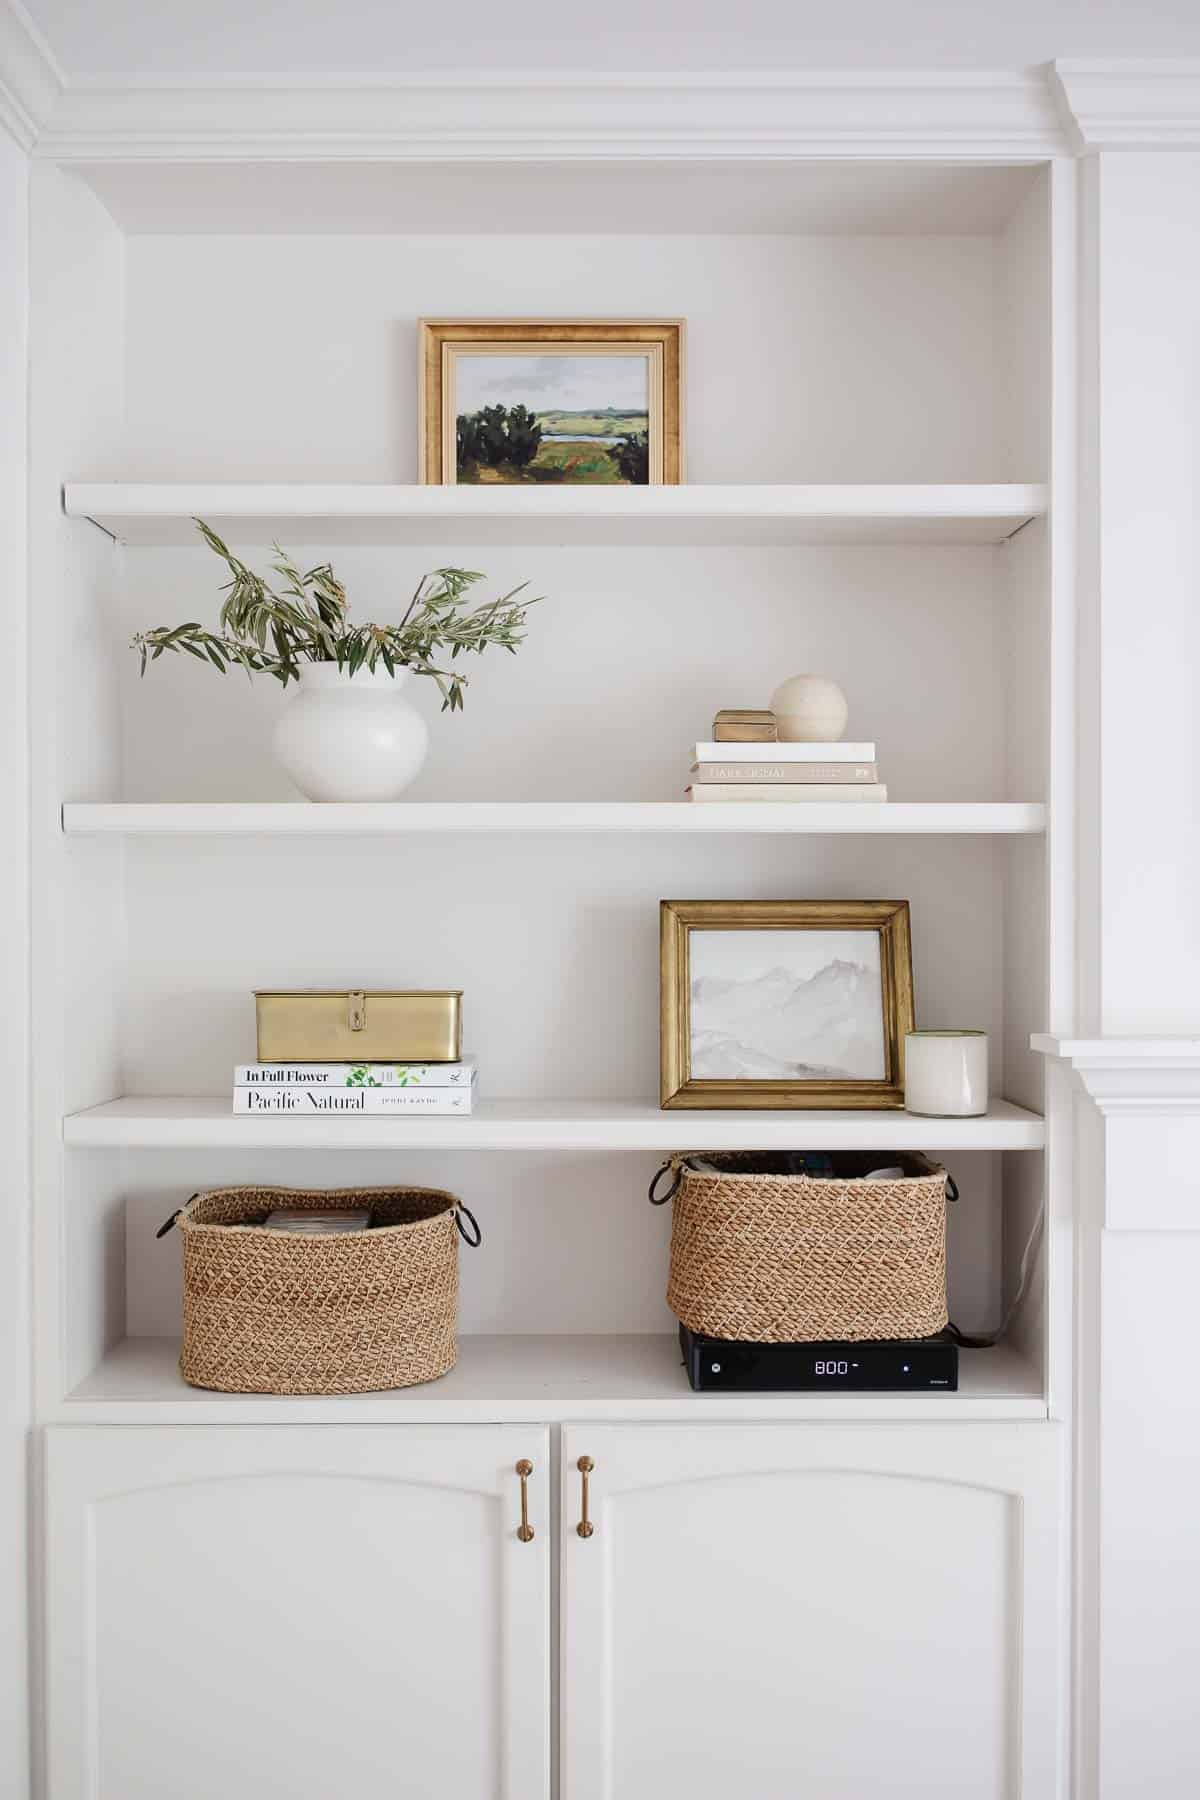 Built in bookcases with minimal baskets paintings and accessories